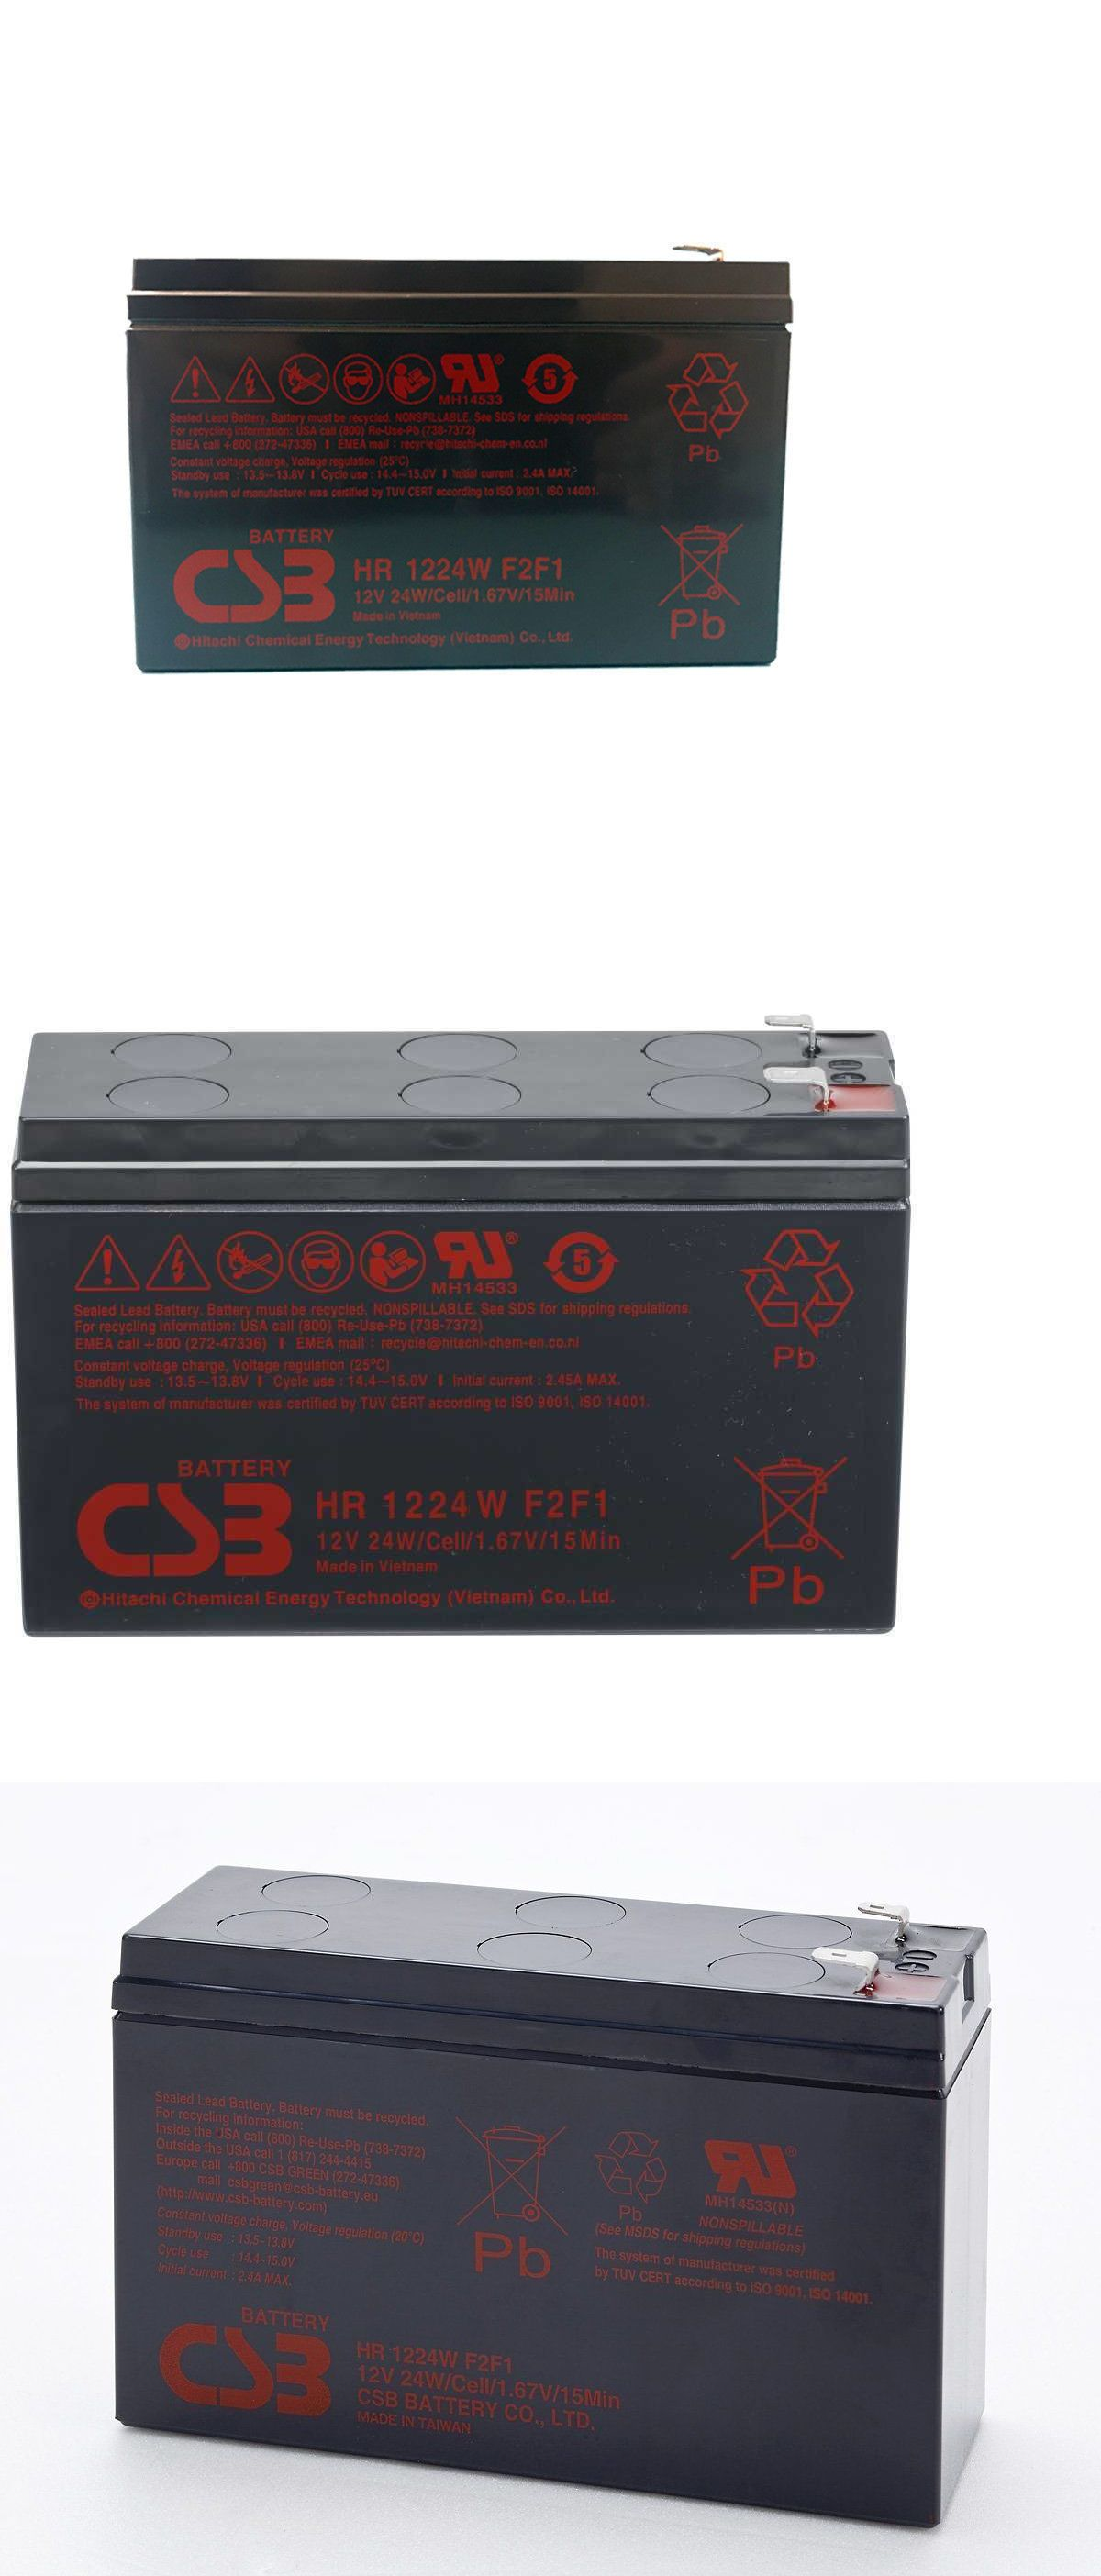 UPS Batteries and Components 48479: New Bb Cps5 5-12